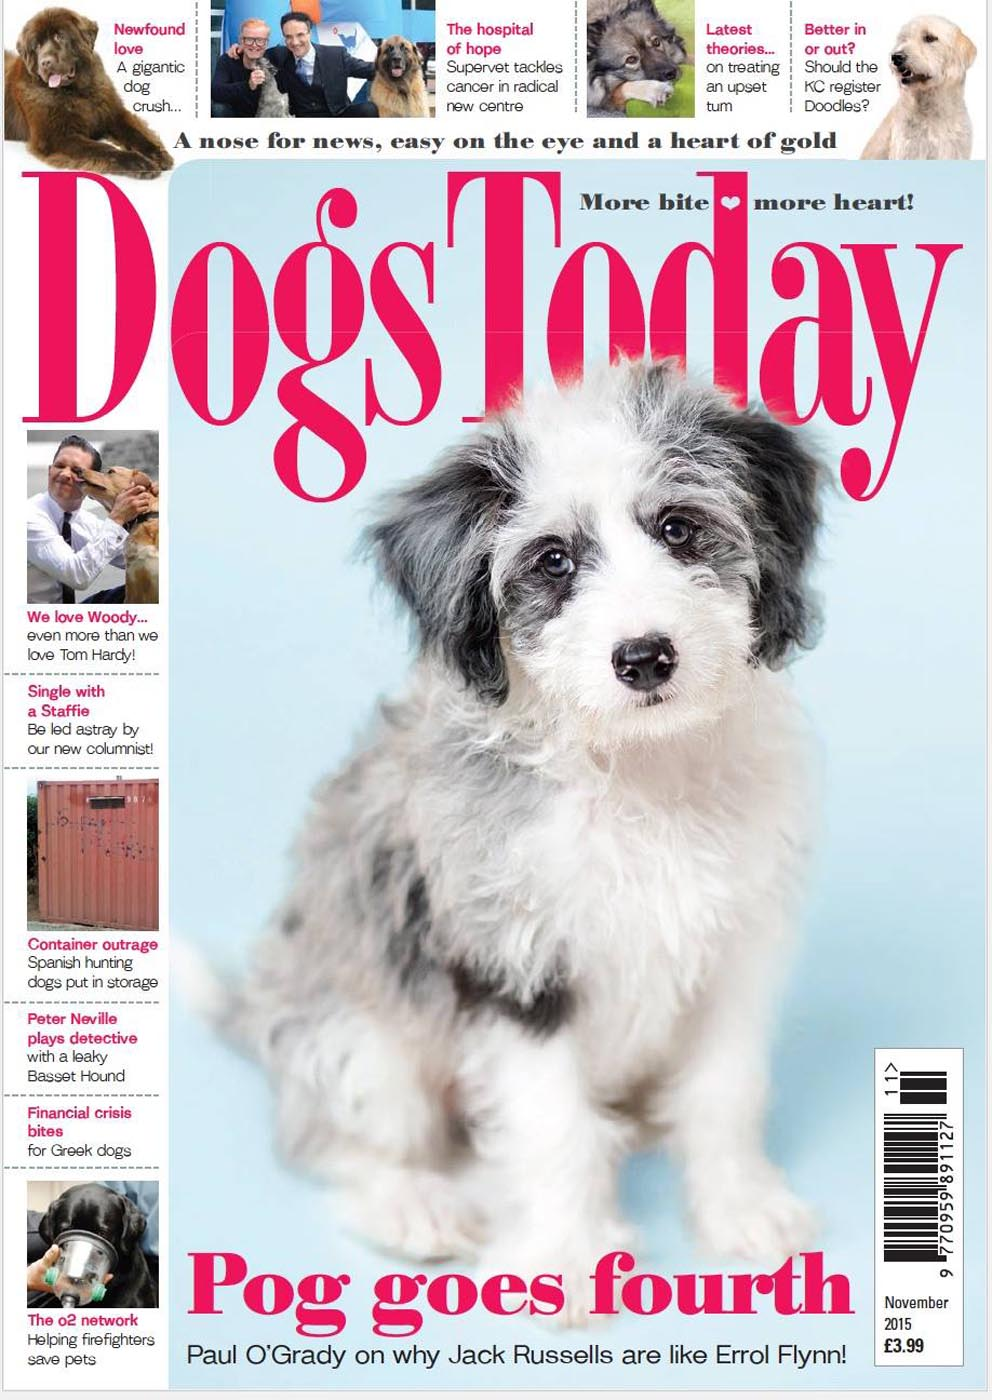 Dogs Today November 2015